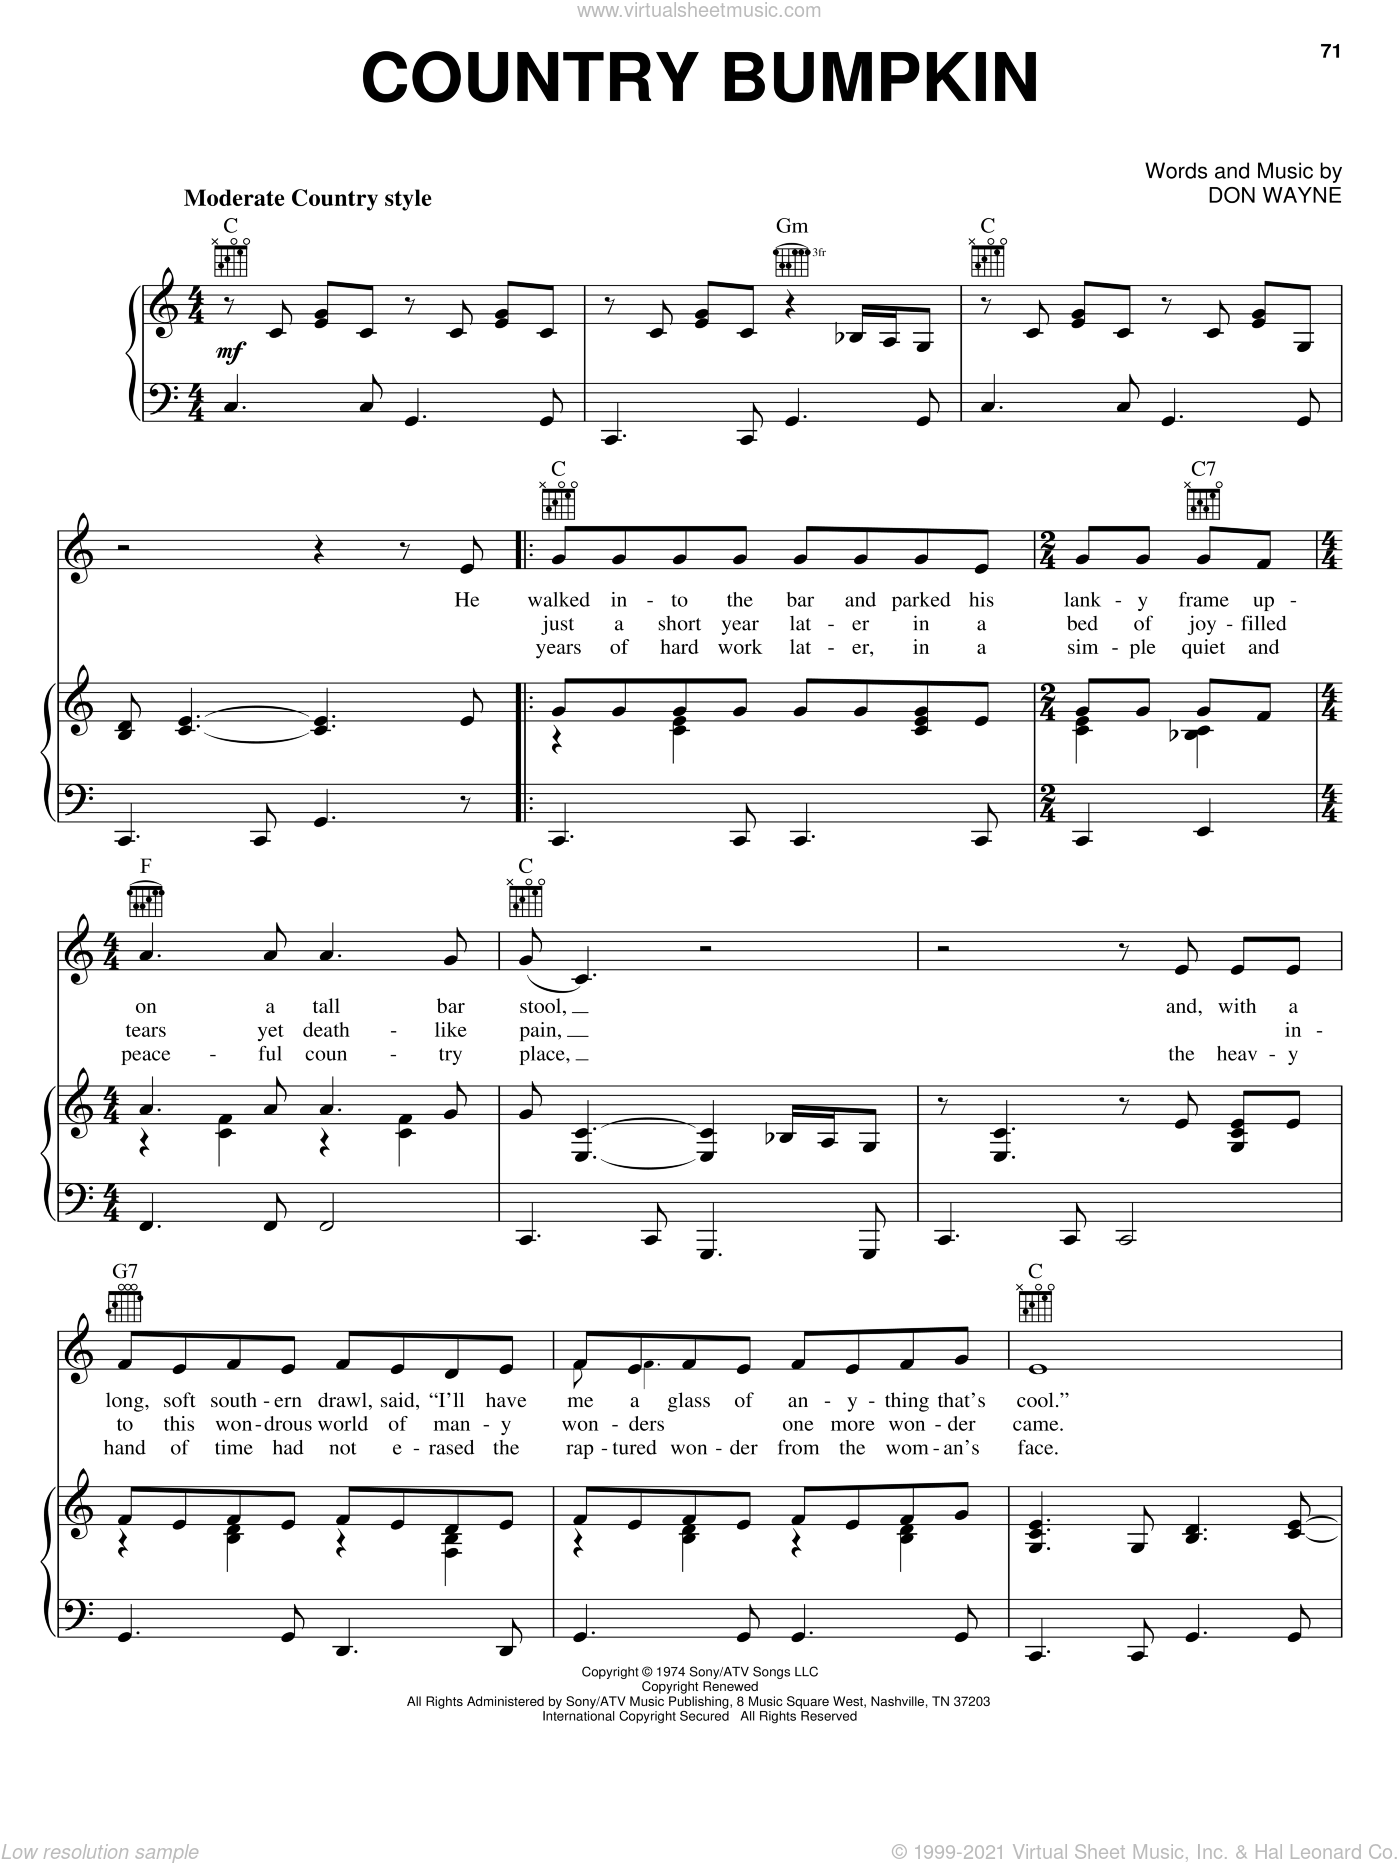 Country Bumpkin sheet music for voice, piano or guitar by Cal Smith, Hank Thompson and Don Wayne, intermediate skill level